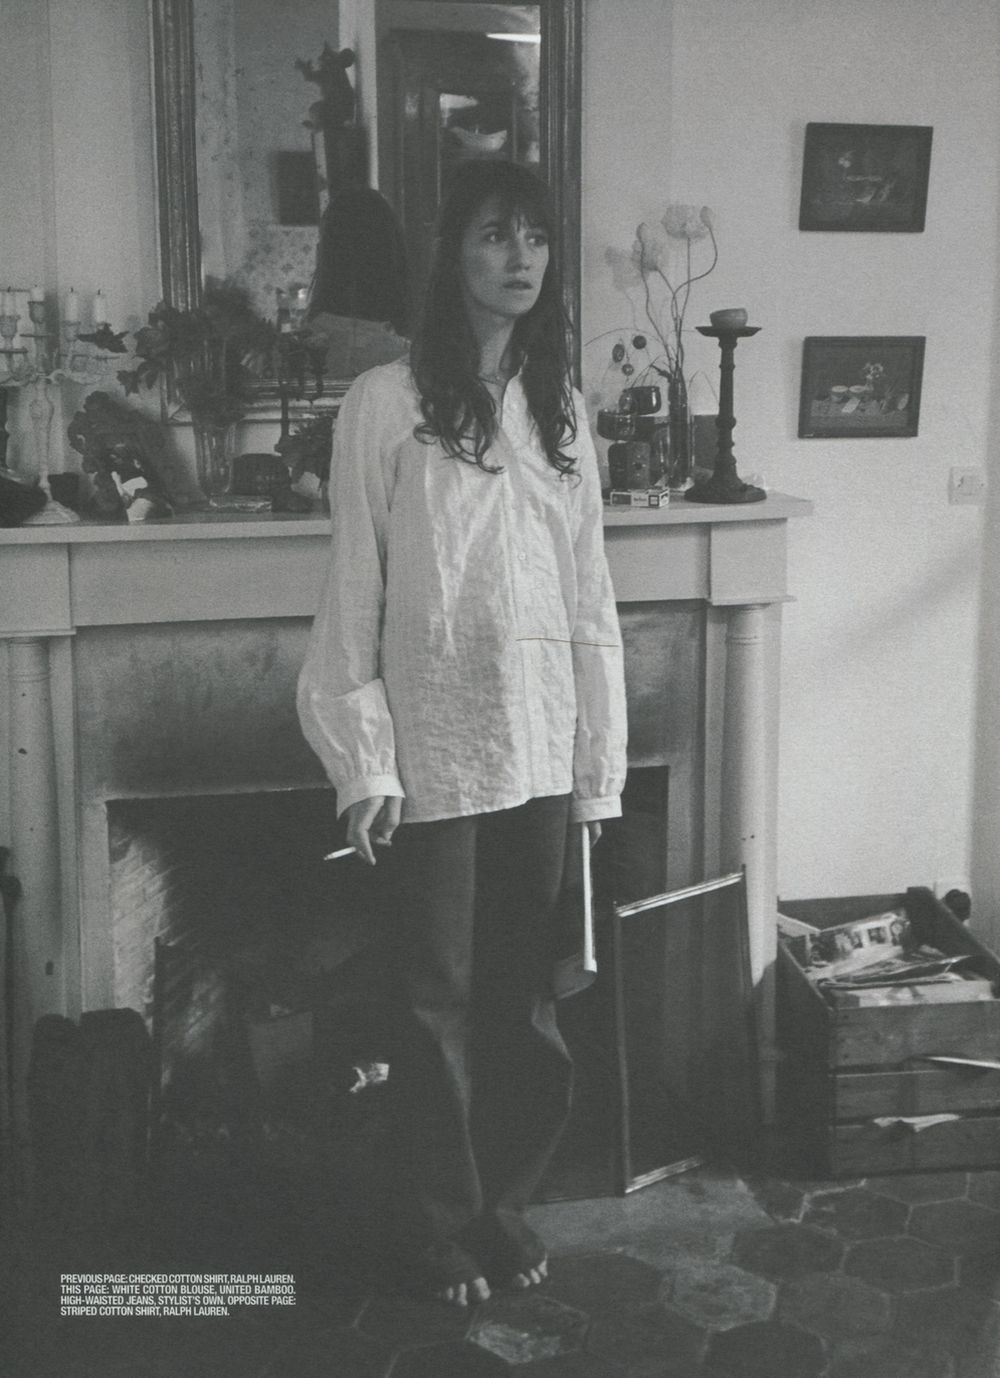 [charlotte+gainsbourg+self+service+2.jpg]